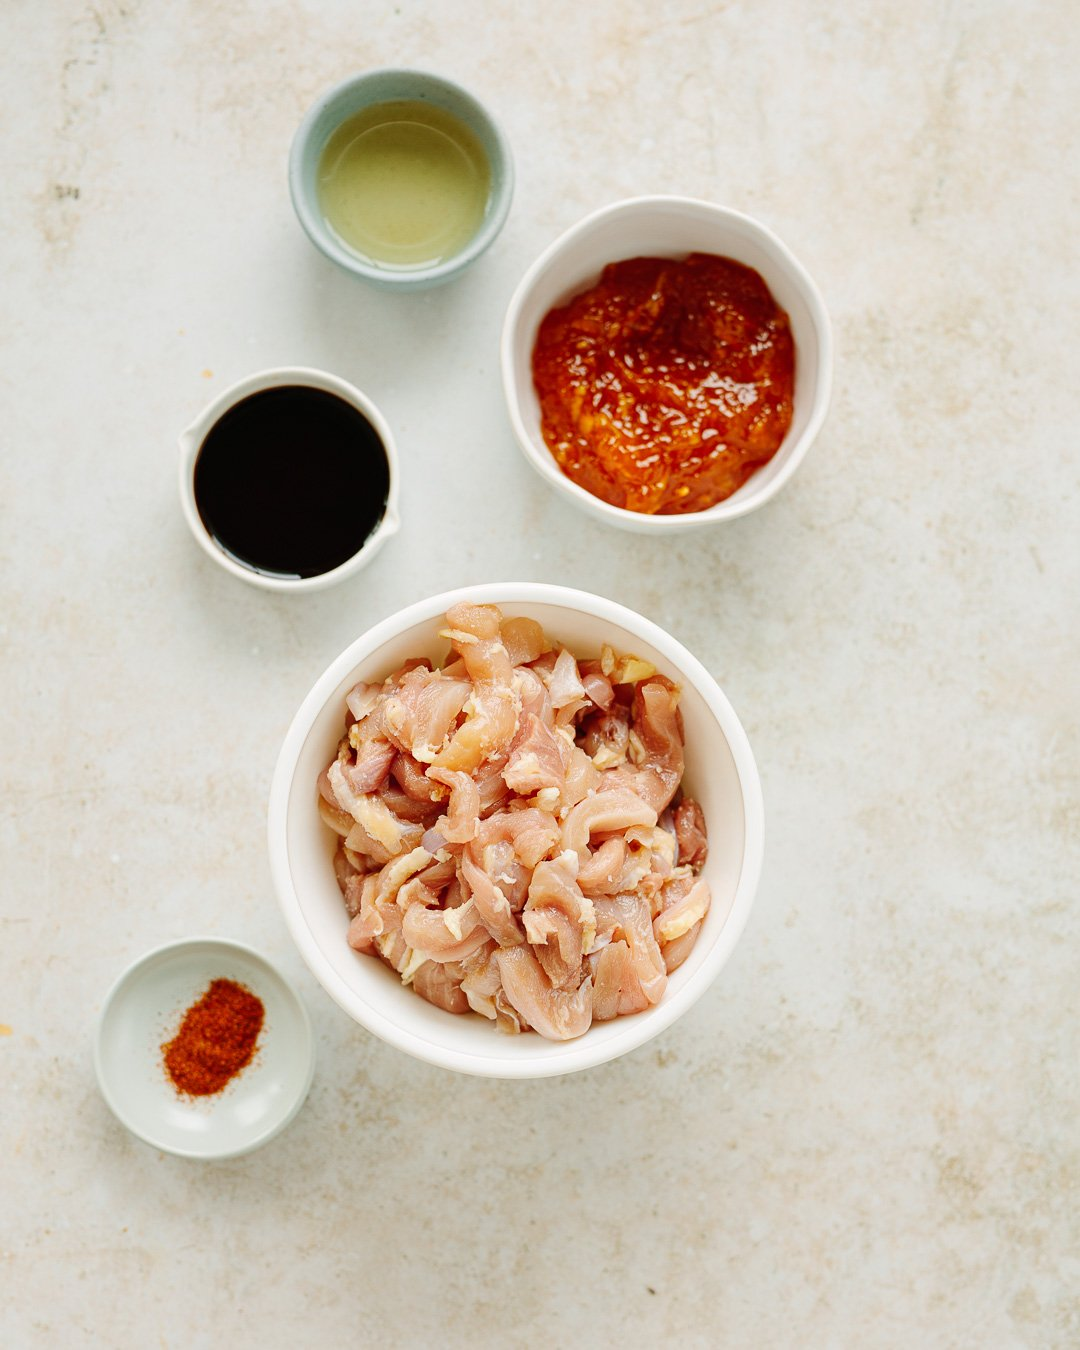 Raw chicken strips with bowls of orange marmalade, rice wine vinegar, soy sauce and cayenne pepper